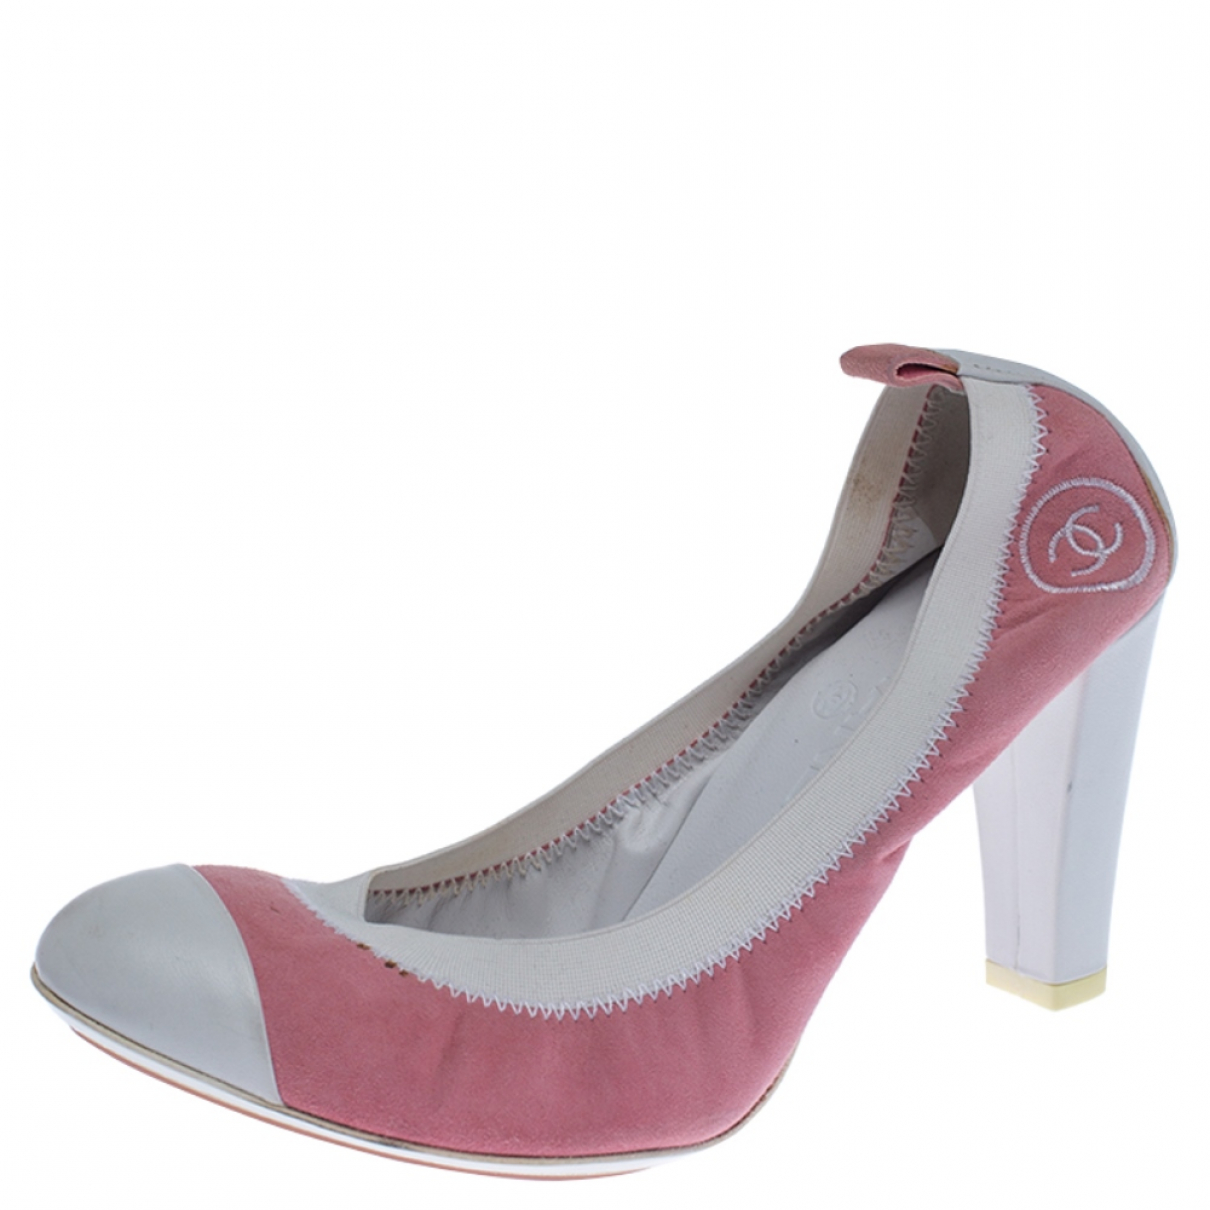 Chanel N Pink Leather Heels for Women 8 US